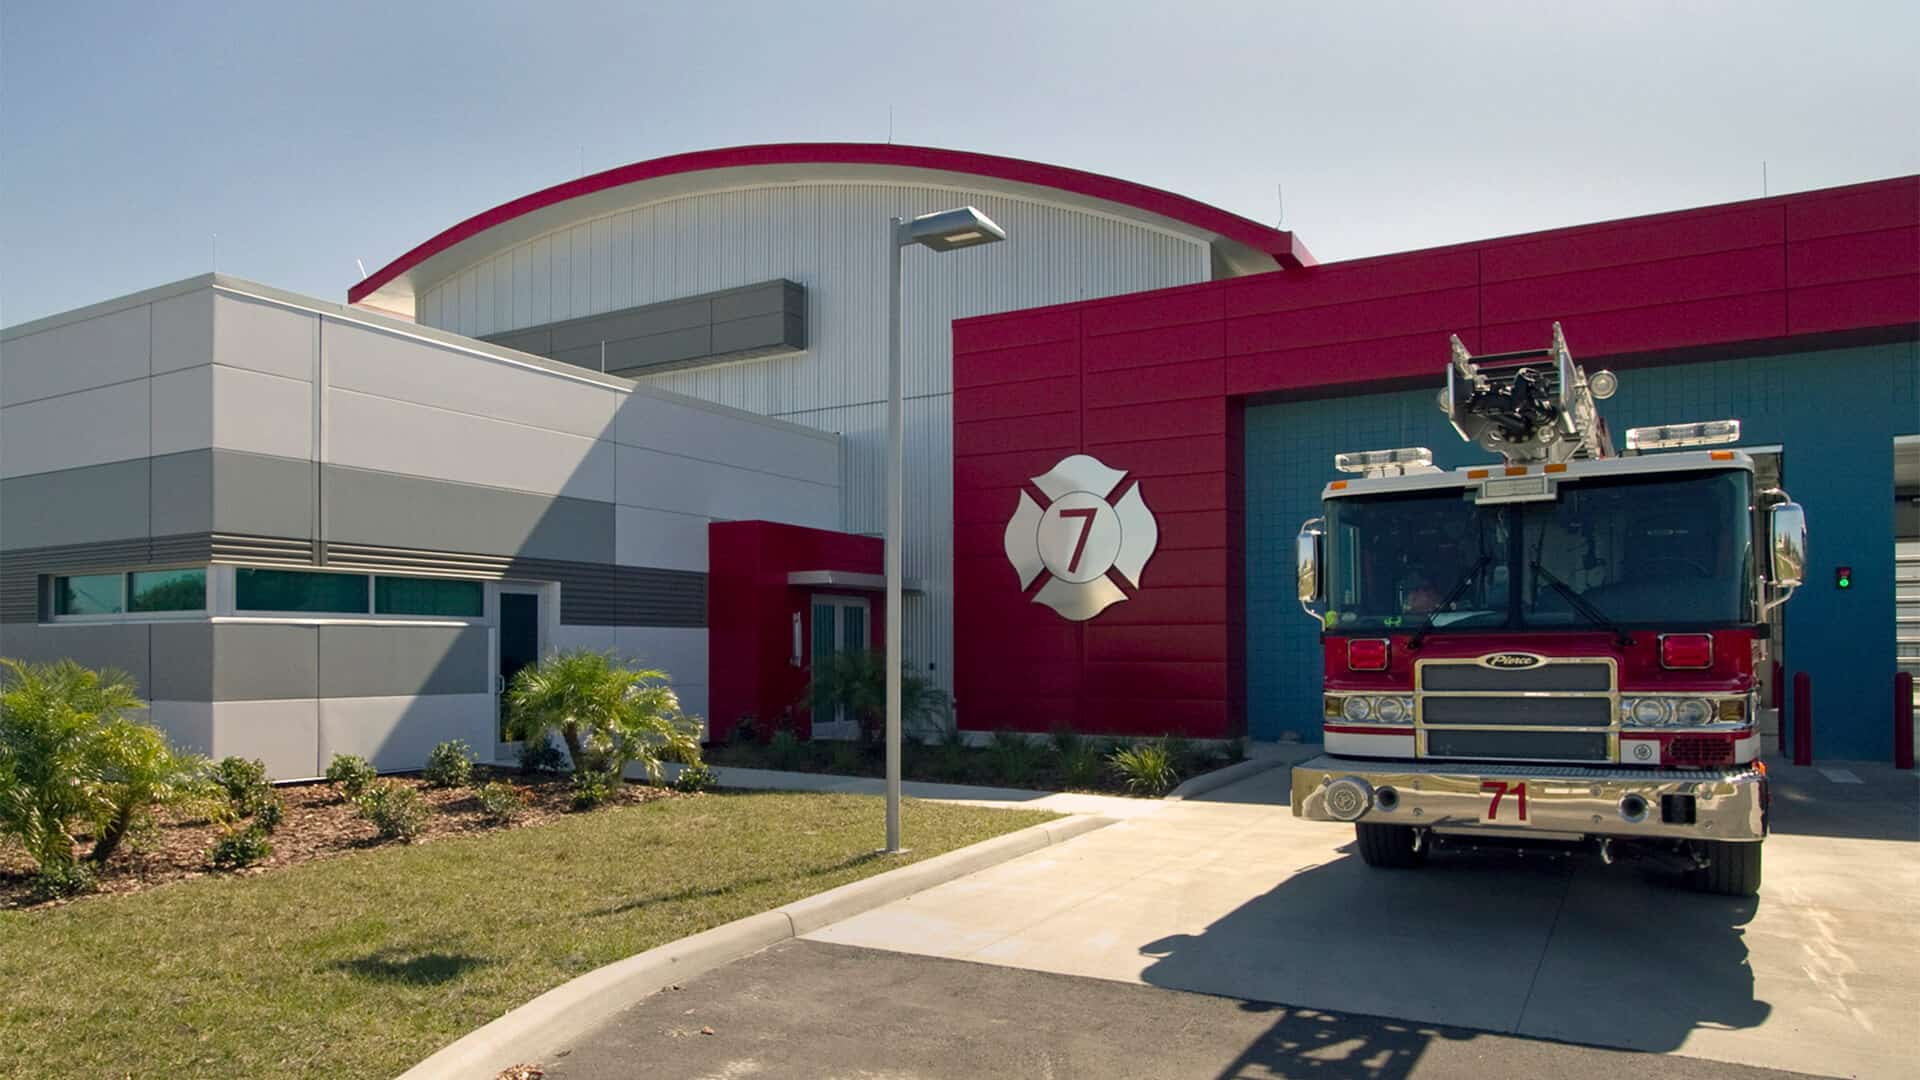 Lakeland Fire Station No. 7 - Main Header